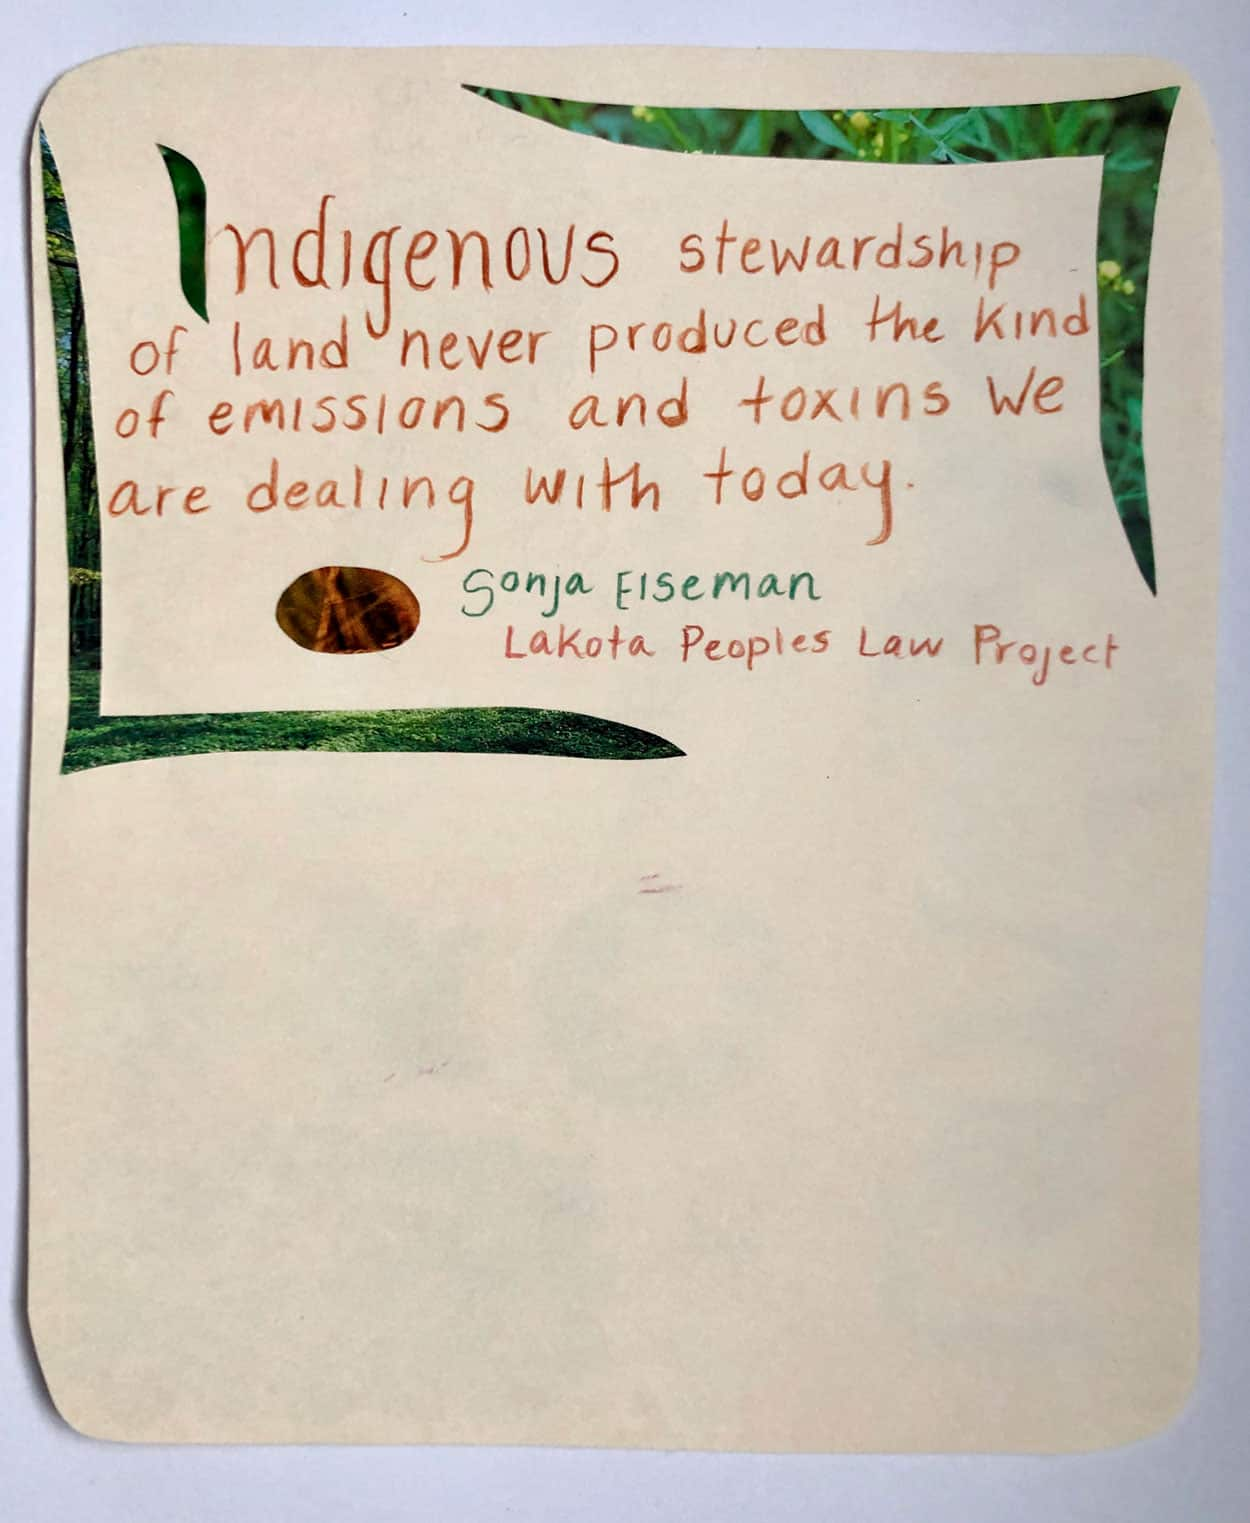 "Political postcard with the words: ""Indigenous stewardship of land never produced the kind of emissions and toxins we are dealing with today"" - Sonja Elseman, Lakota Peoples Law Project. Surrounds by collaged grass cut outs"